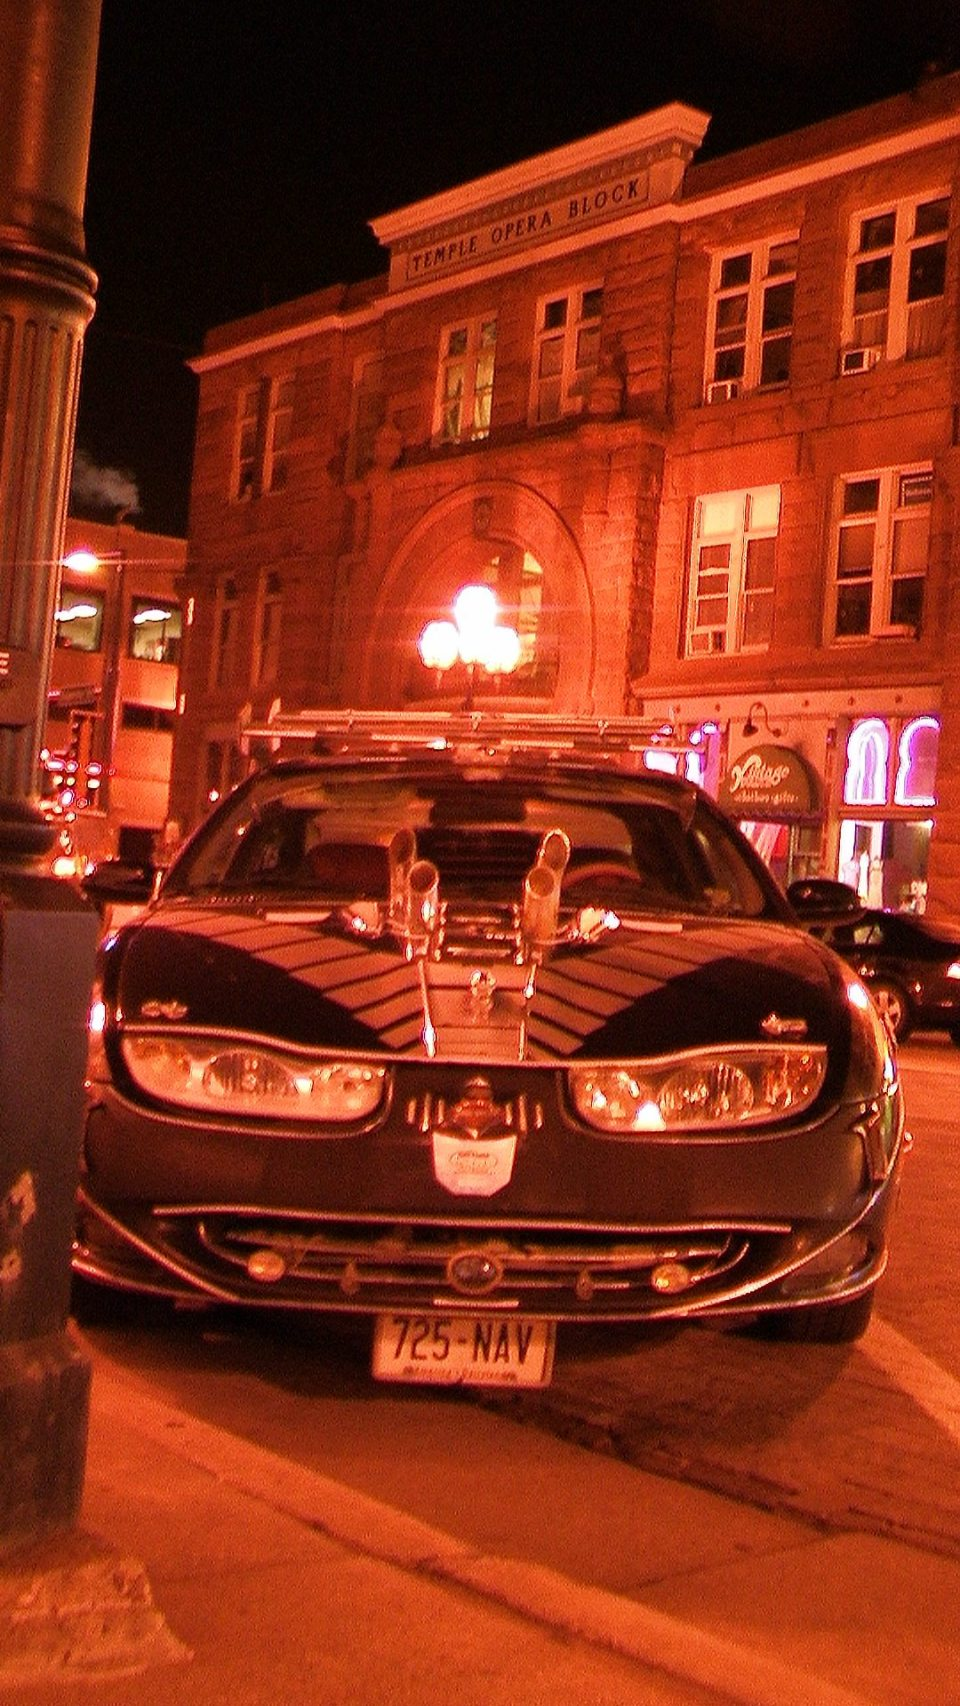 Wisconsinite cruiser on the streets of Duluth's Superior Street